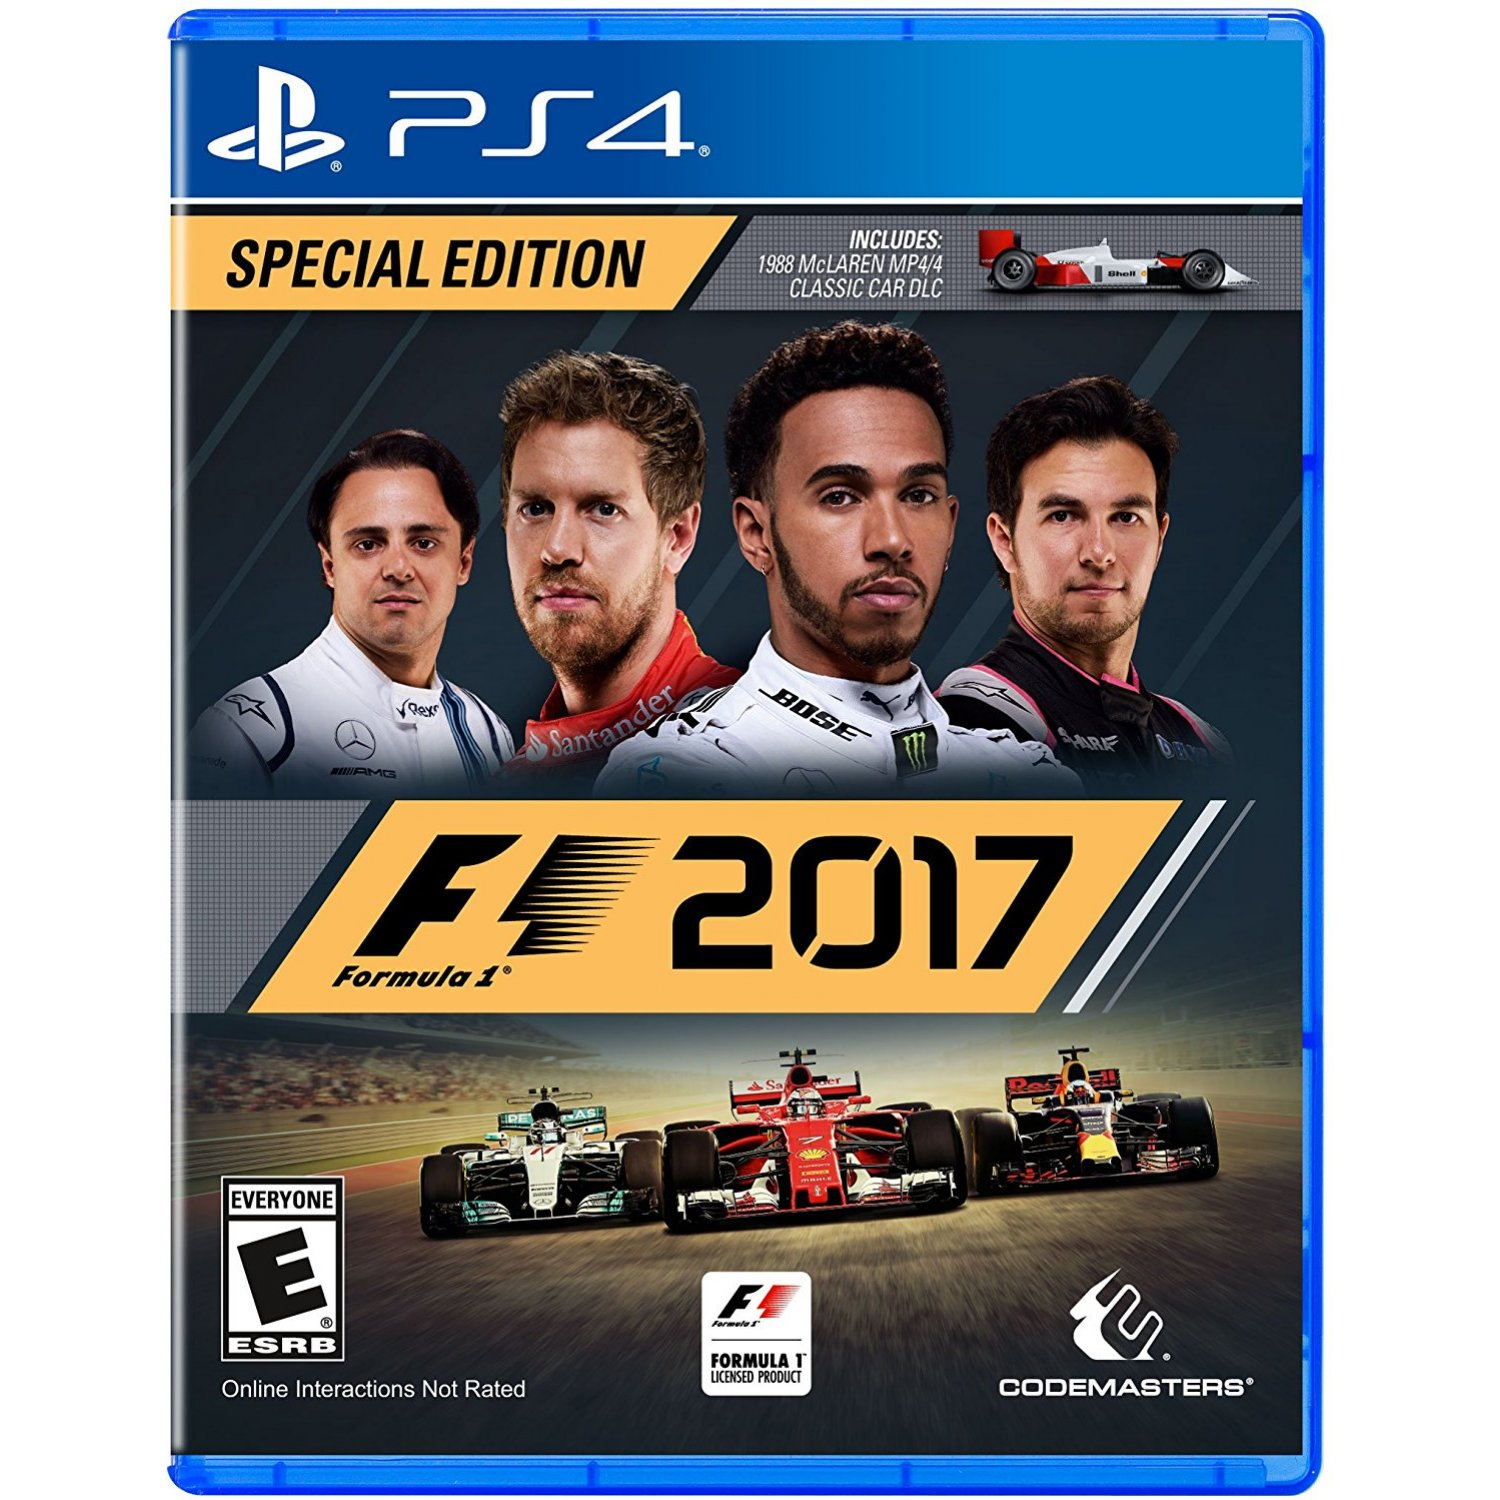 ps4 formula 1 f1 2017 special editio end 2 18 2020 3 14 pm. Black Bedroom Furniture Sets. Home Design Ideas